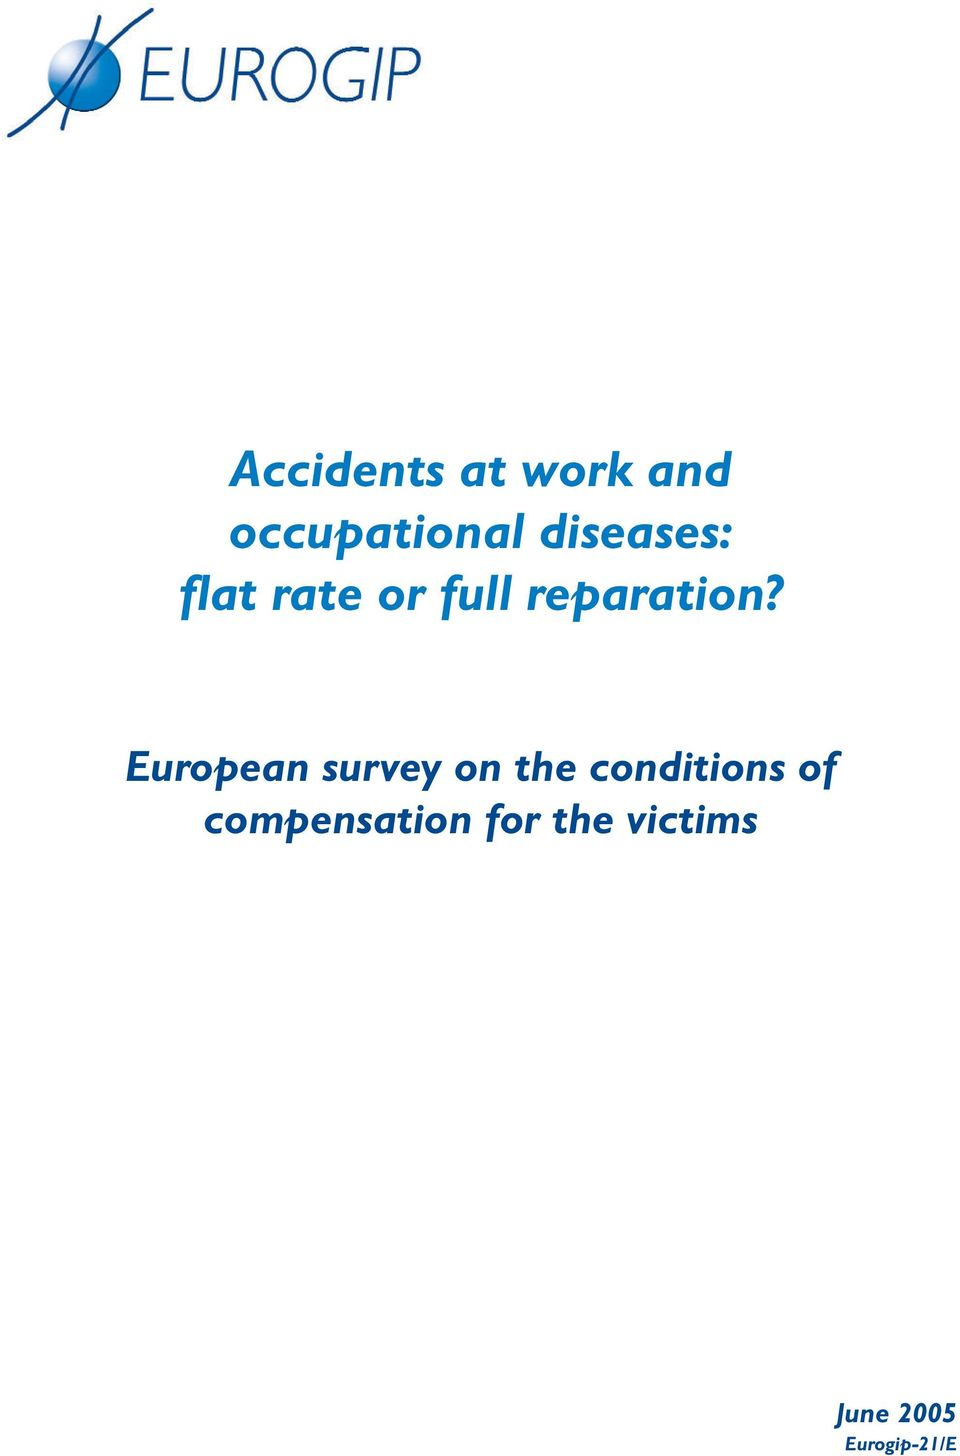 European survey on the conditions of